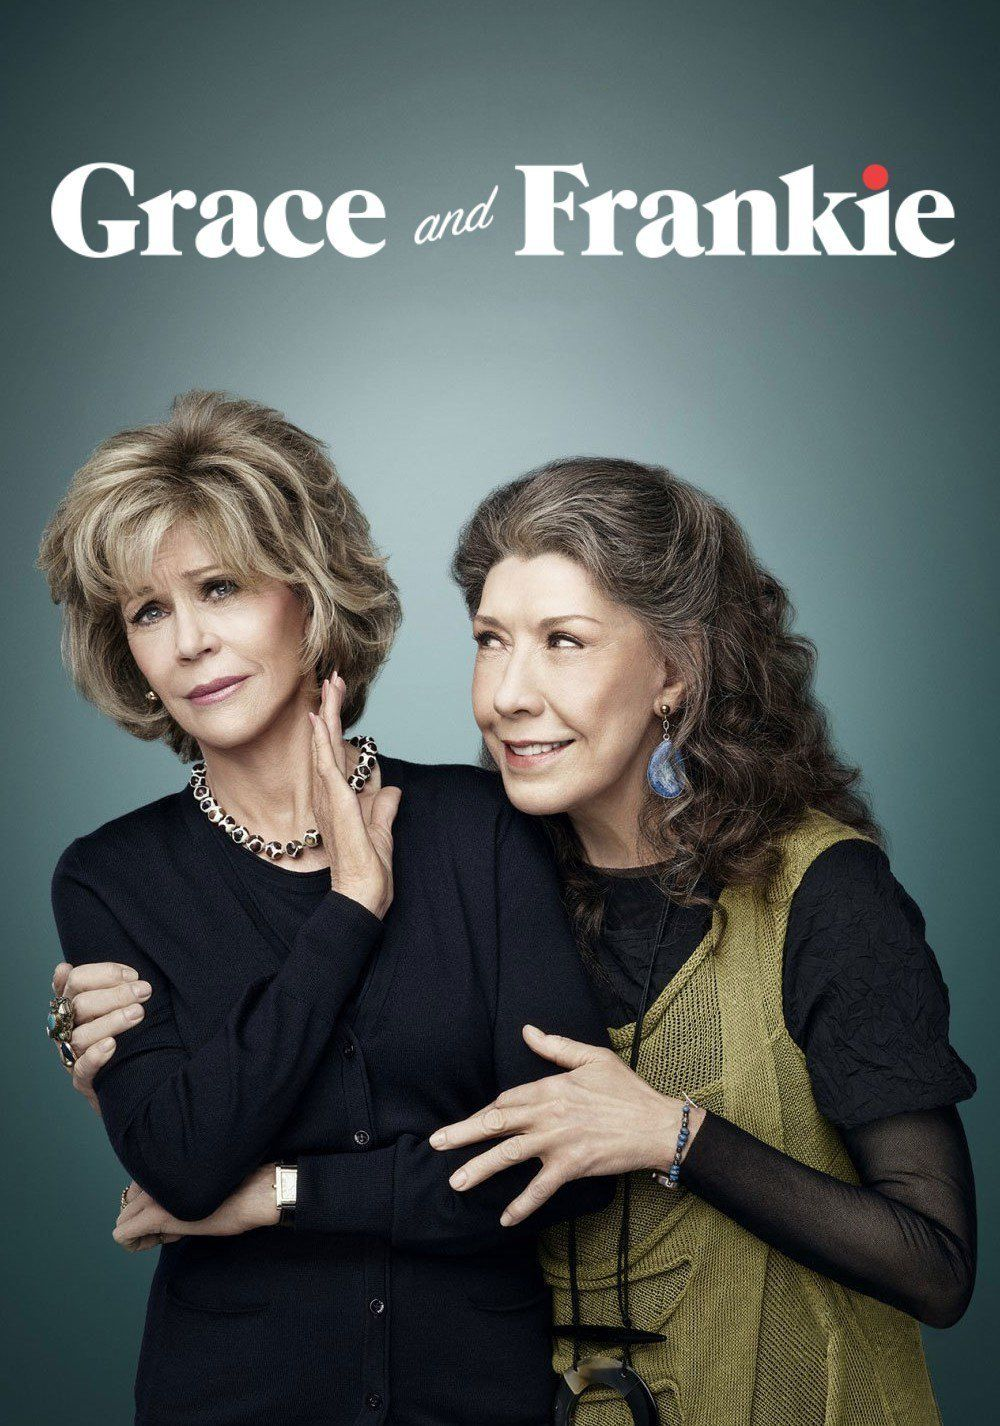 Grace And Frankie Quotes : grace, frankie, quotes,